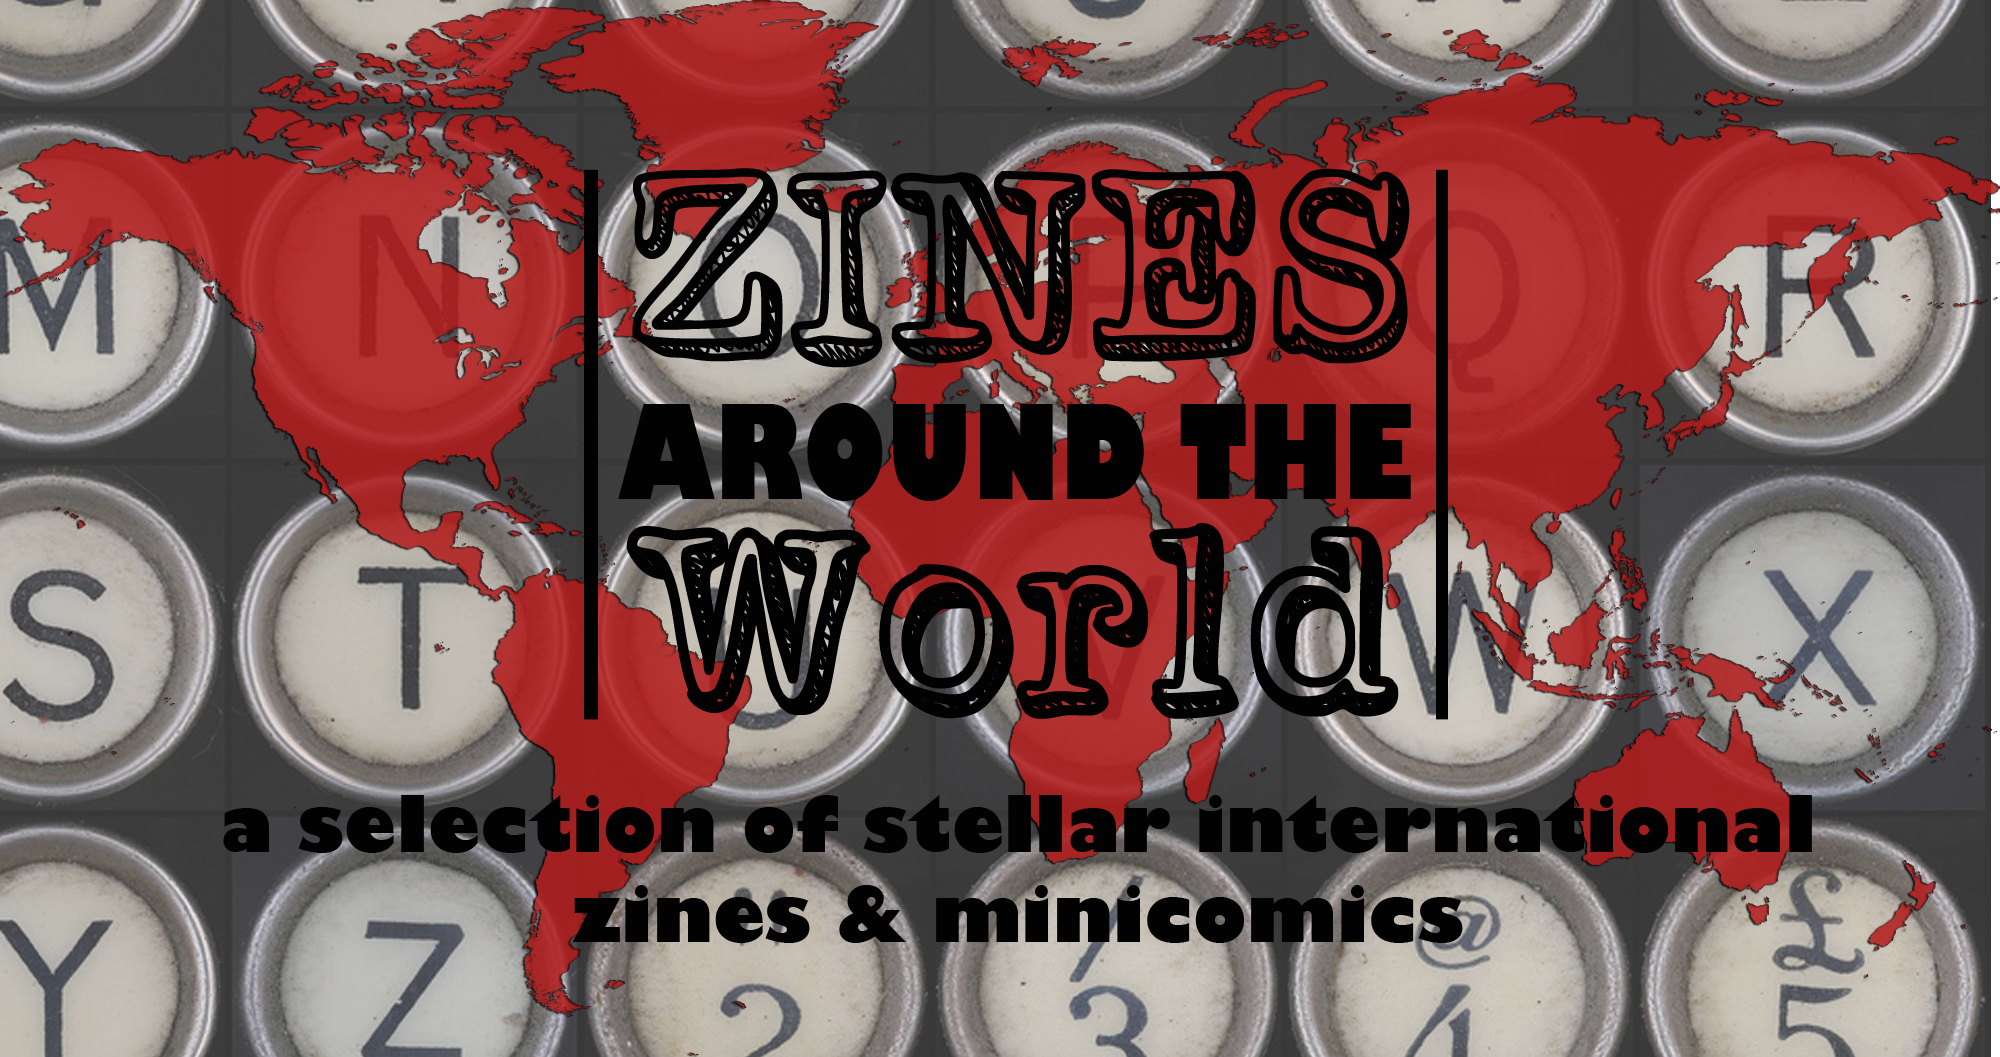 internationalzines